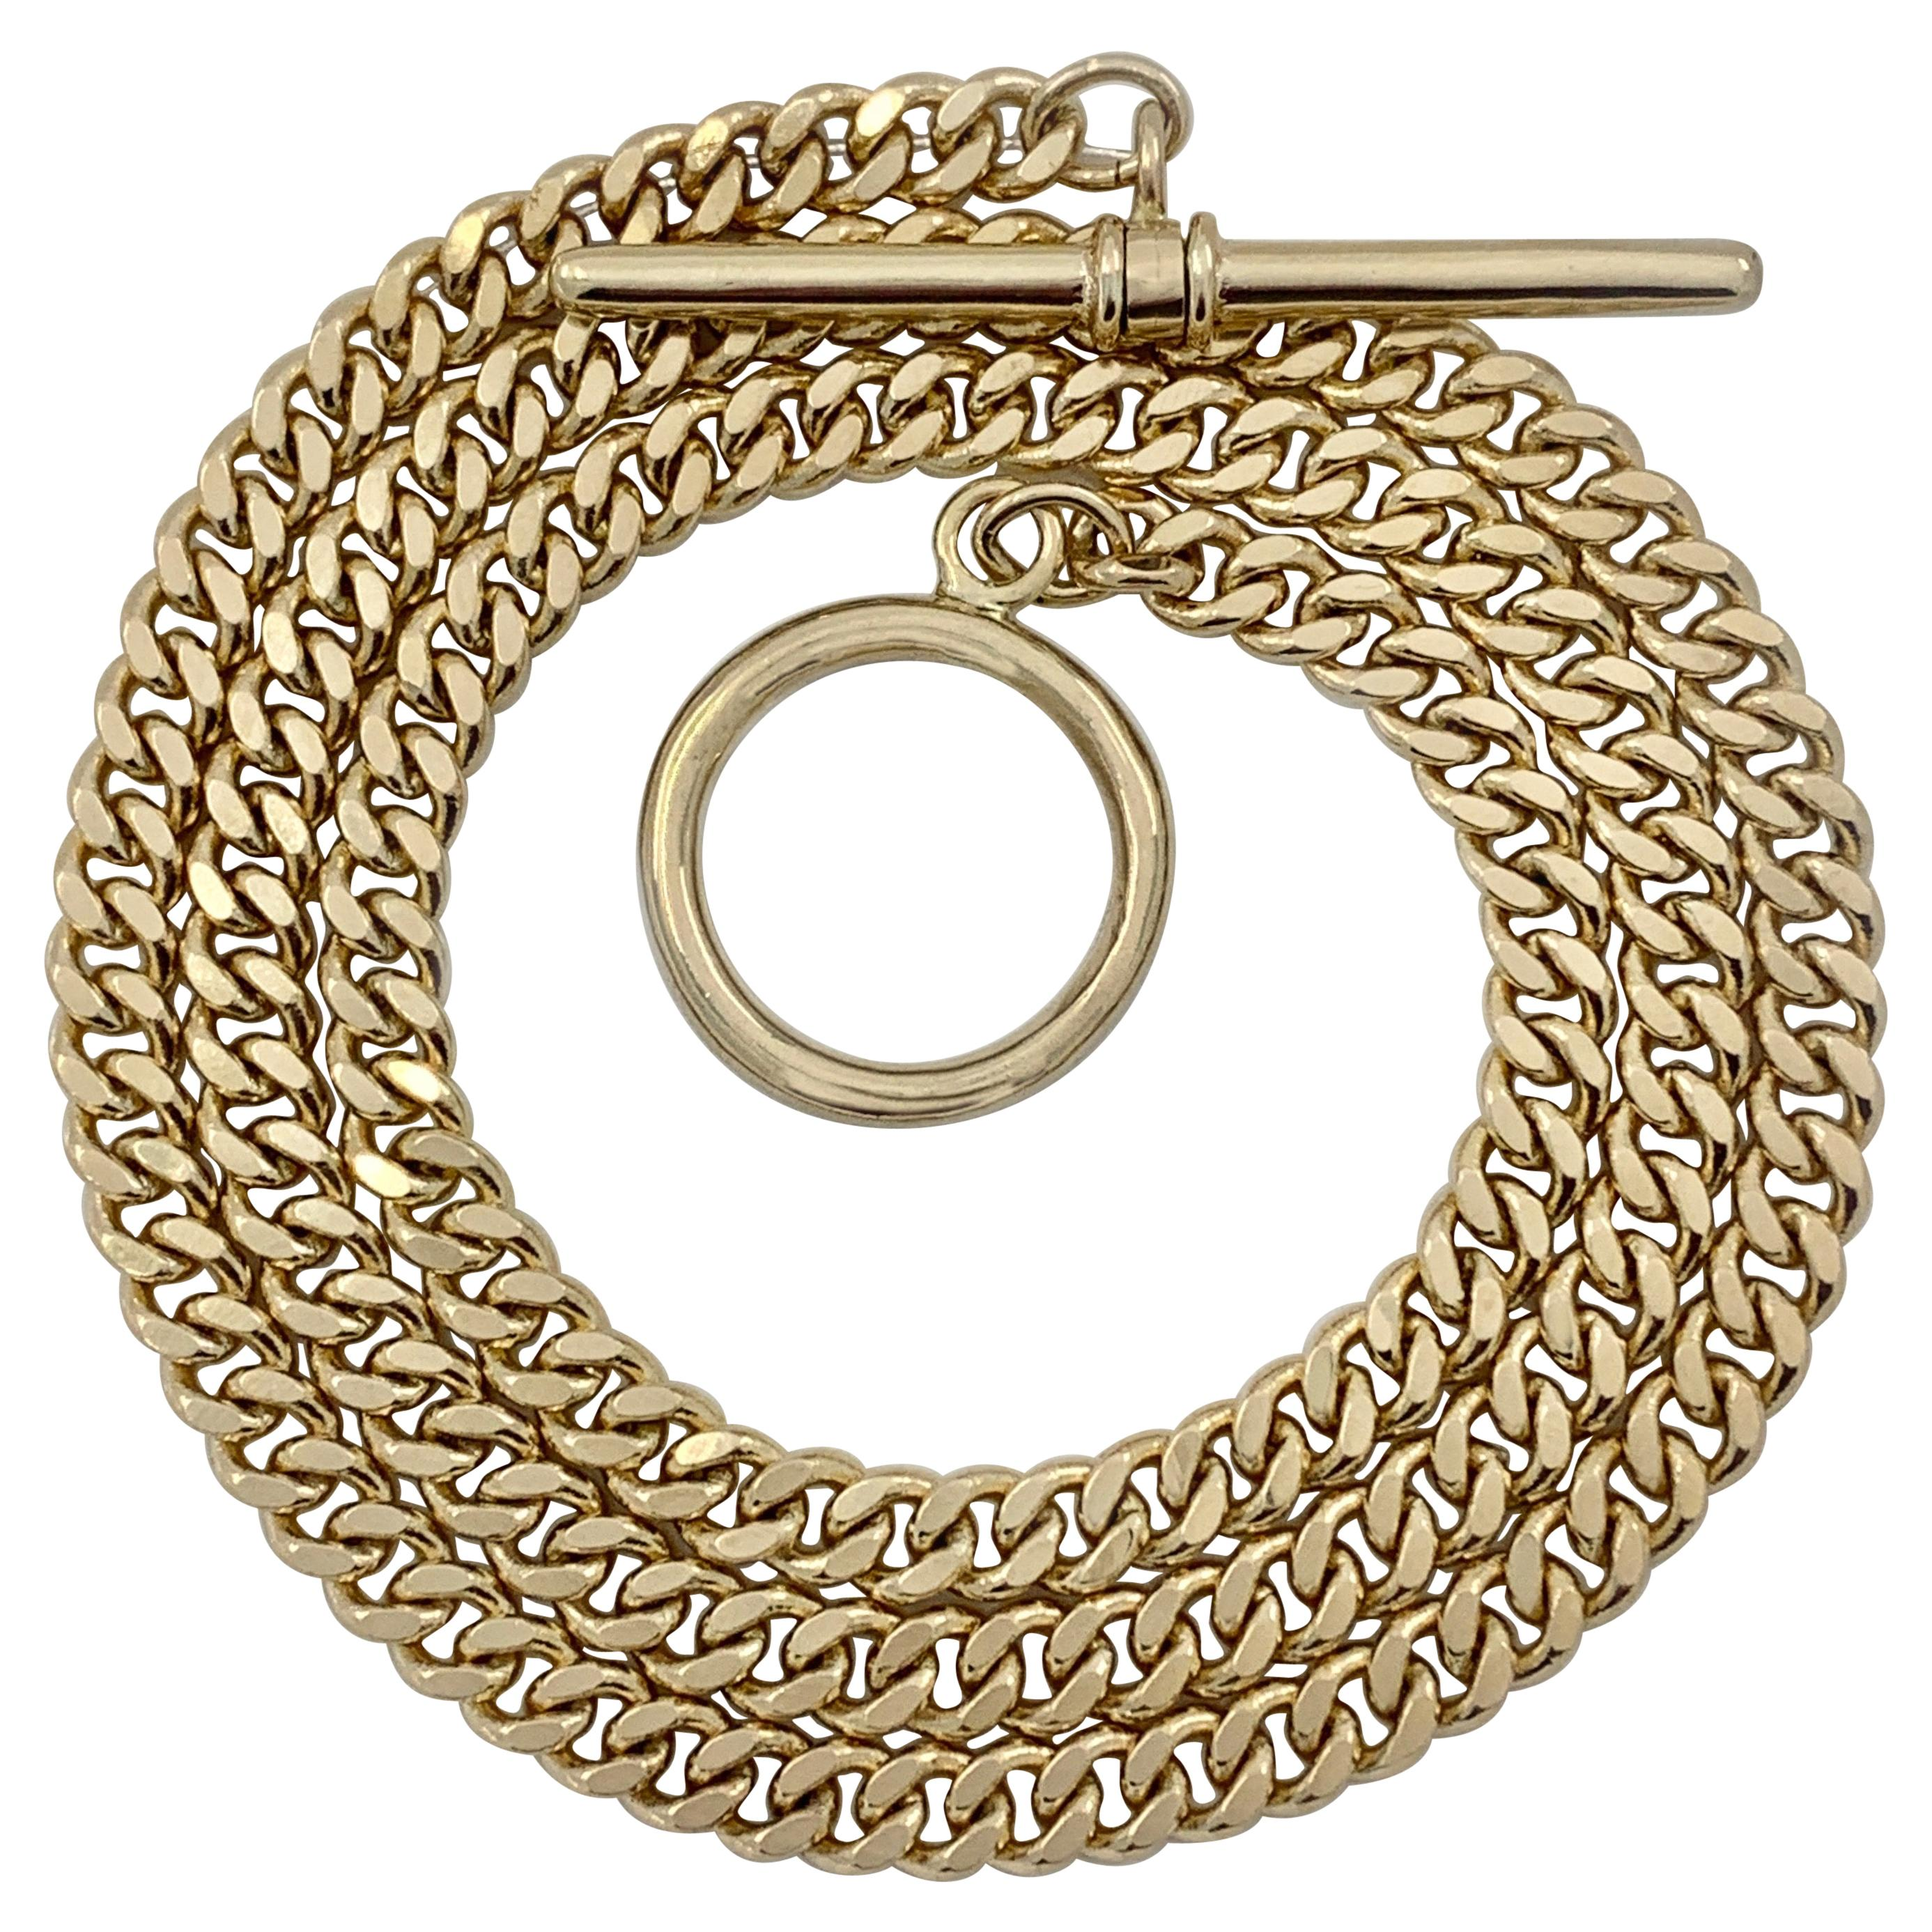 Curb Chain Necklace in Yellow Gold with Oversized Toggle Closure